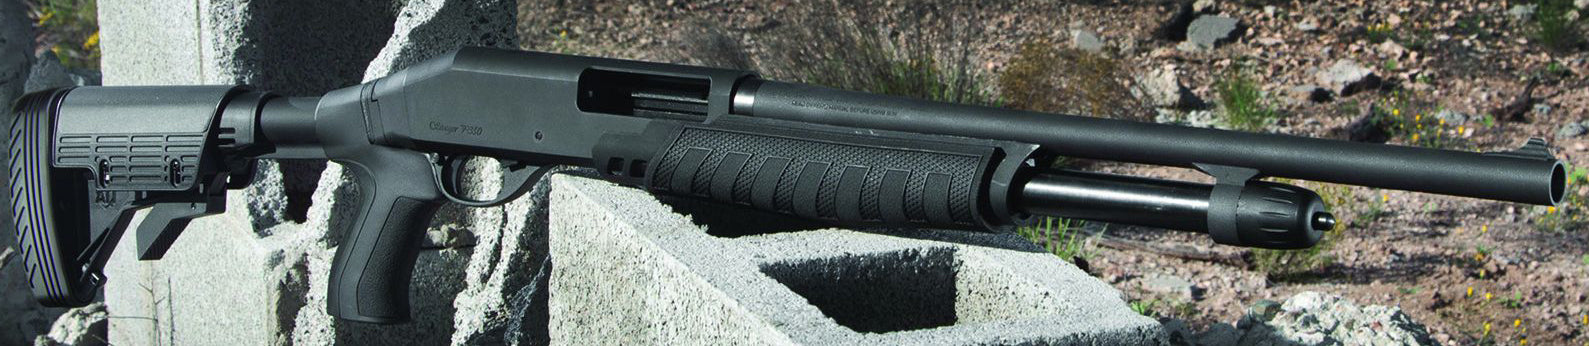 ATI REMINGTON TALON T2 STOCK